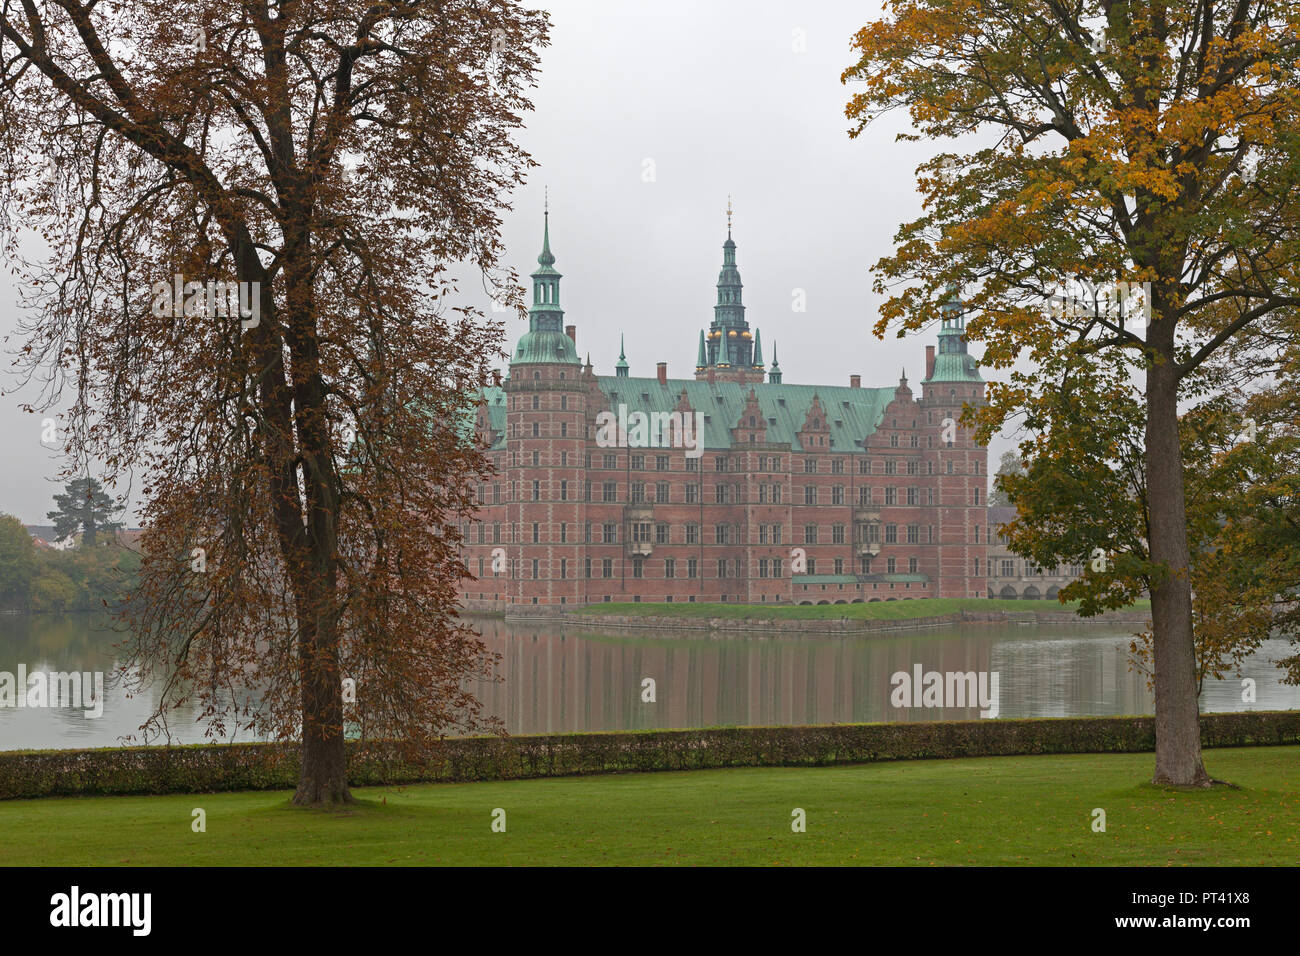 Frederiksborg Castle in Hillerød, North Sealand, Denmark, on a foggy autumn day Stock Photo